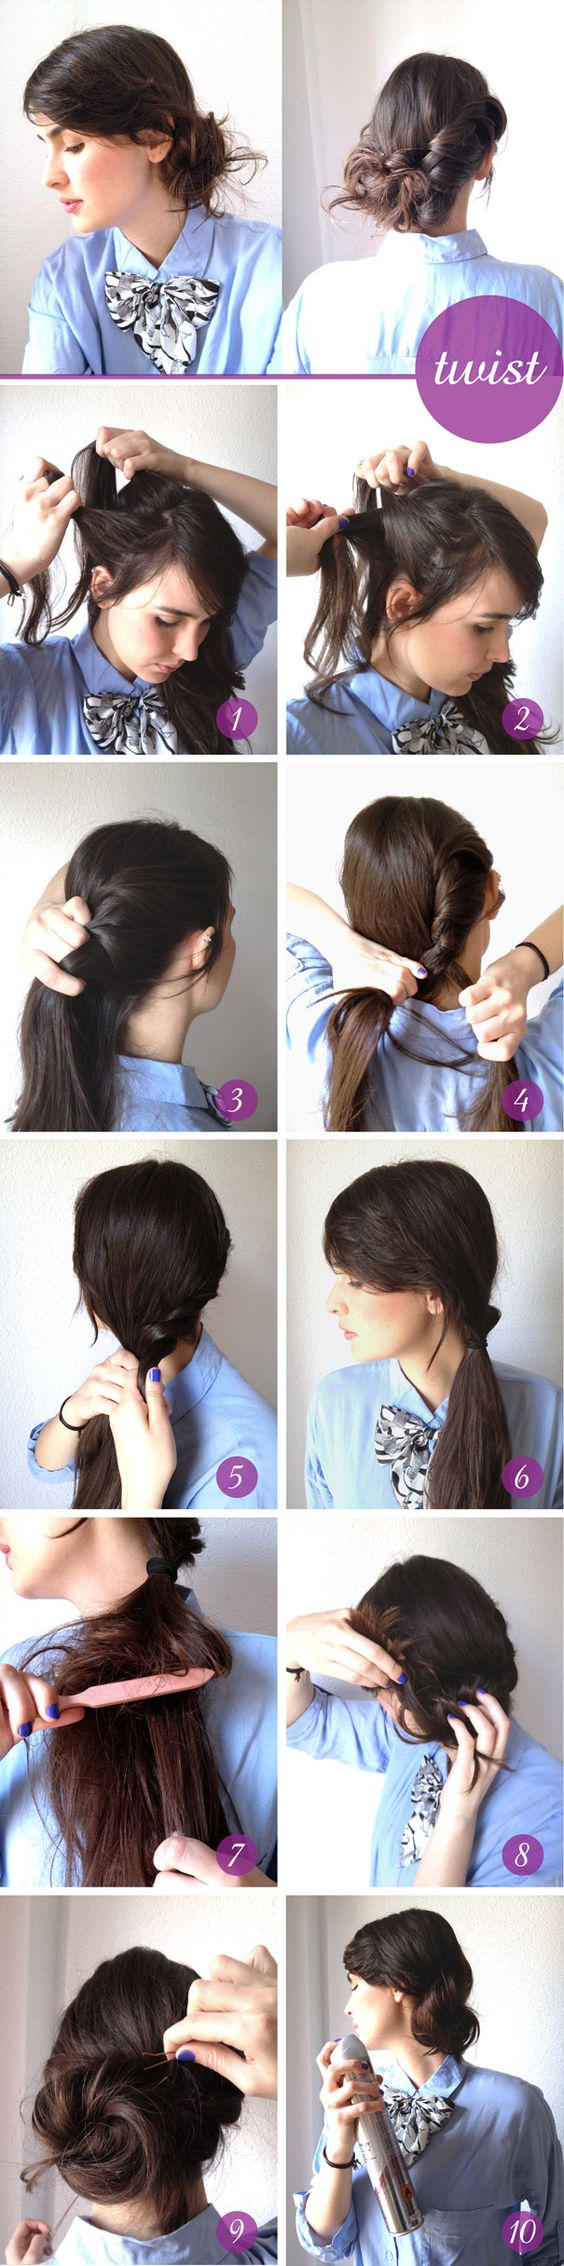 How to do the twist bun!! So cute! Can't wait till my hair is long enough to try it!